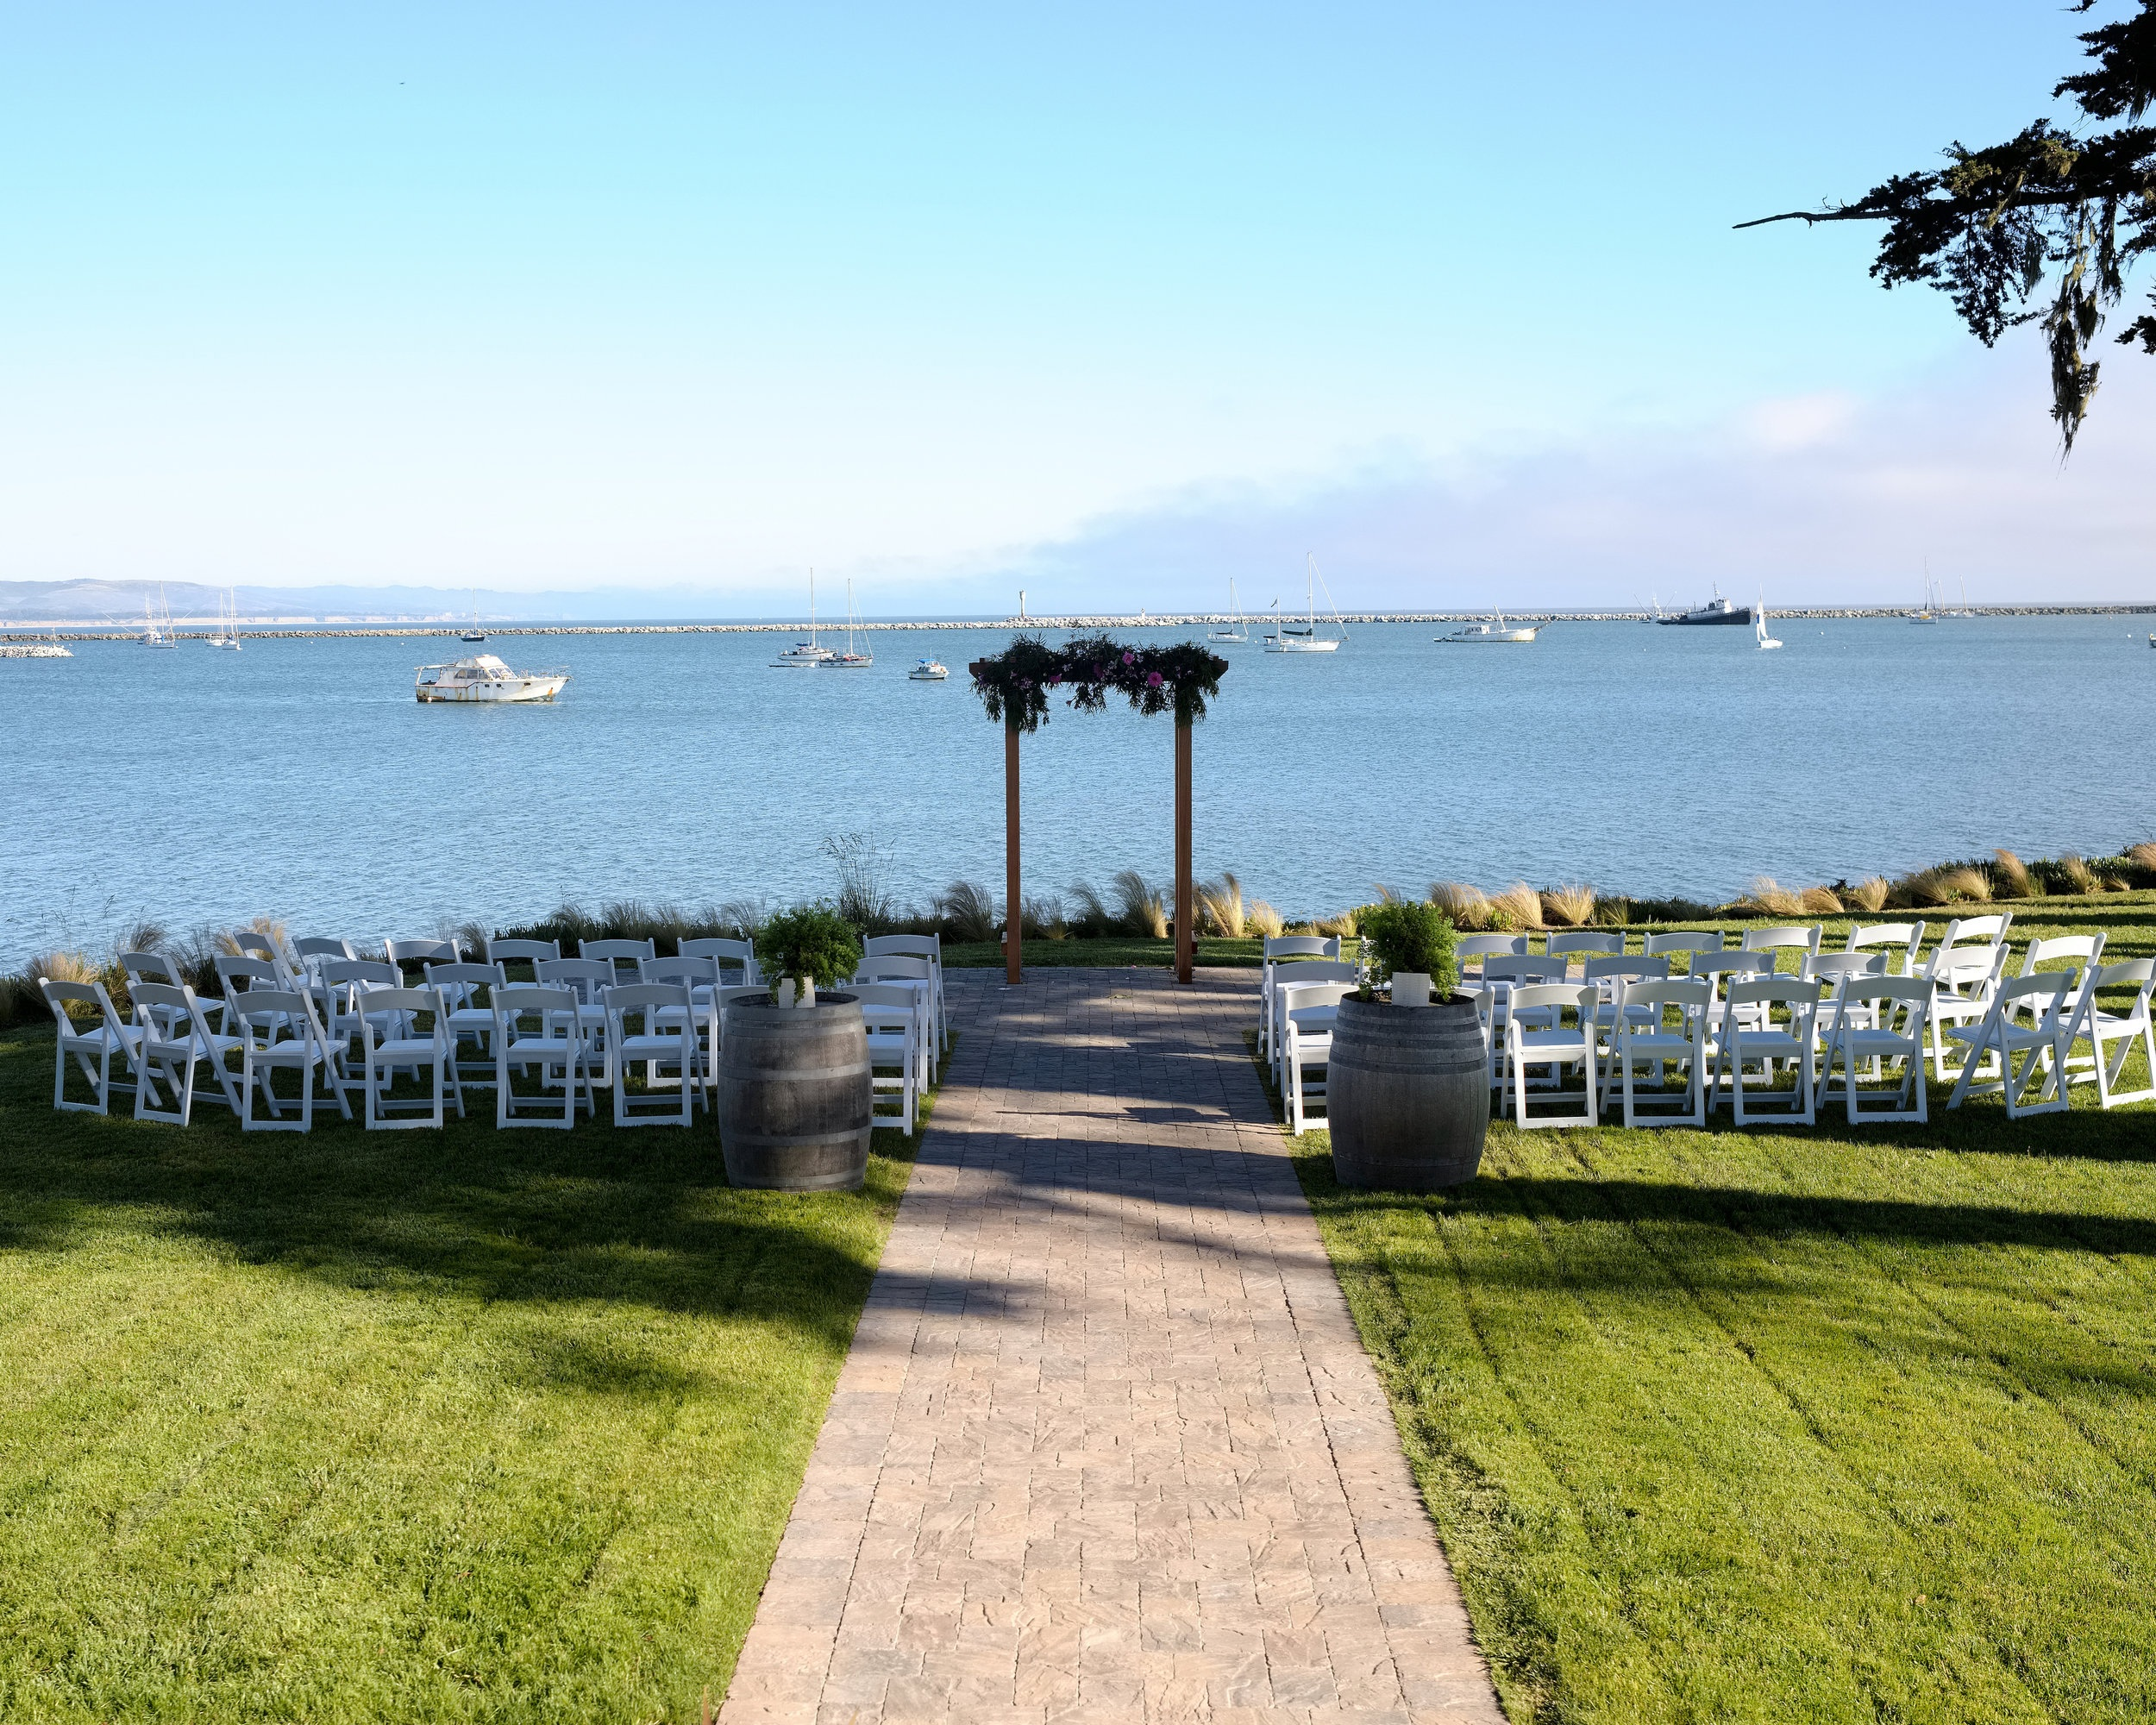 Waterfront Garden - Stunning, private, and unobstructed views of the ocean create the perfect venue for a romantic wedding by the sea. A wide-paved garden path surrounded by grass and a grove of local cypress trees completes the setting.